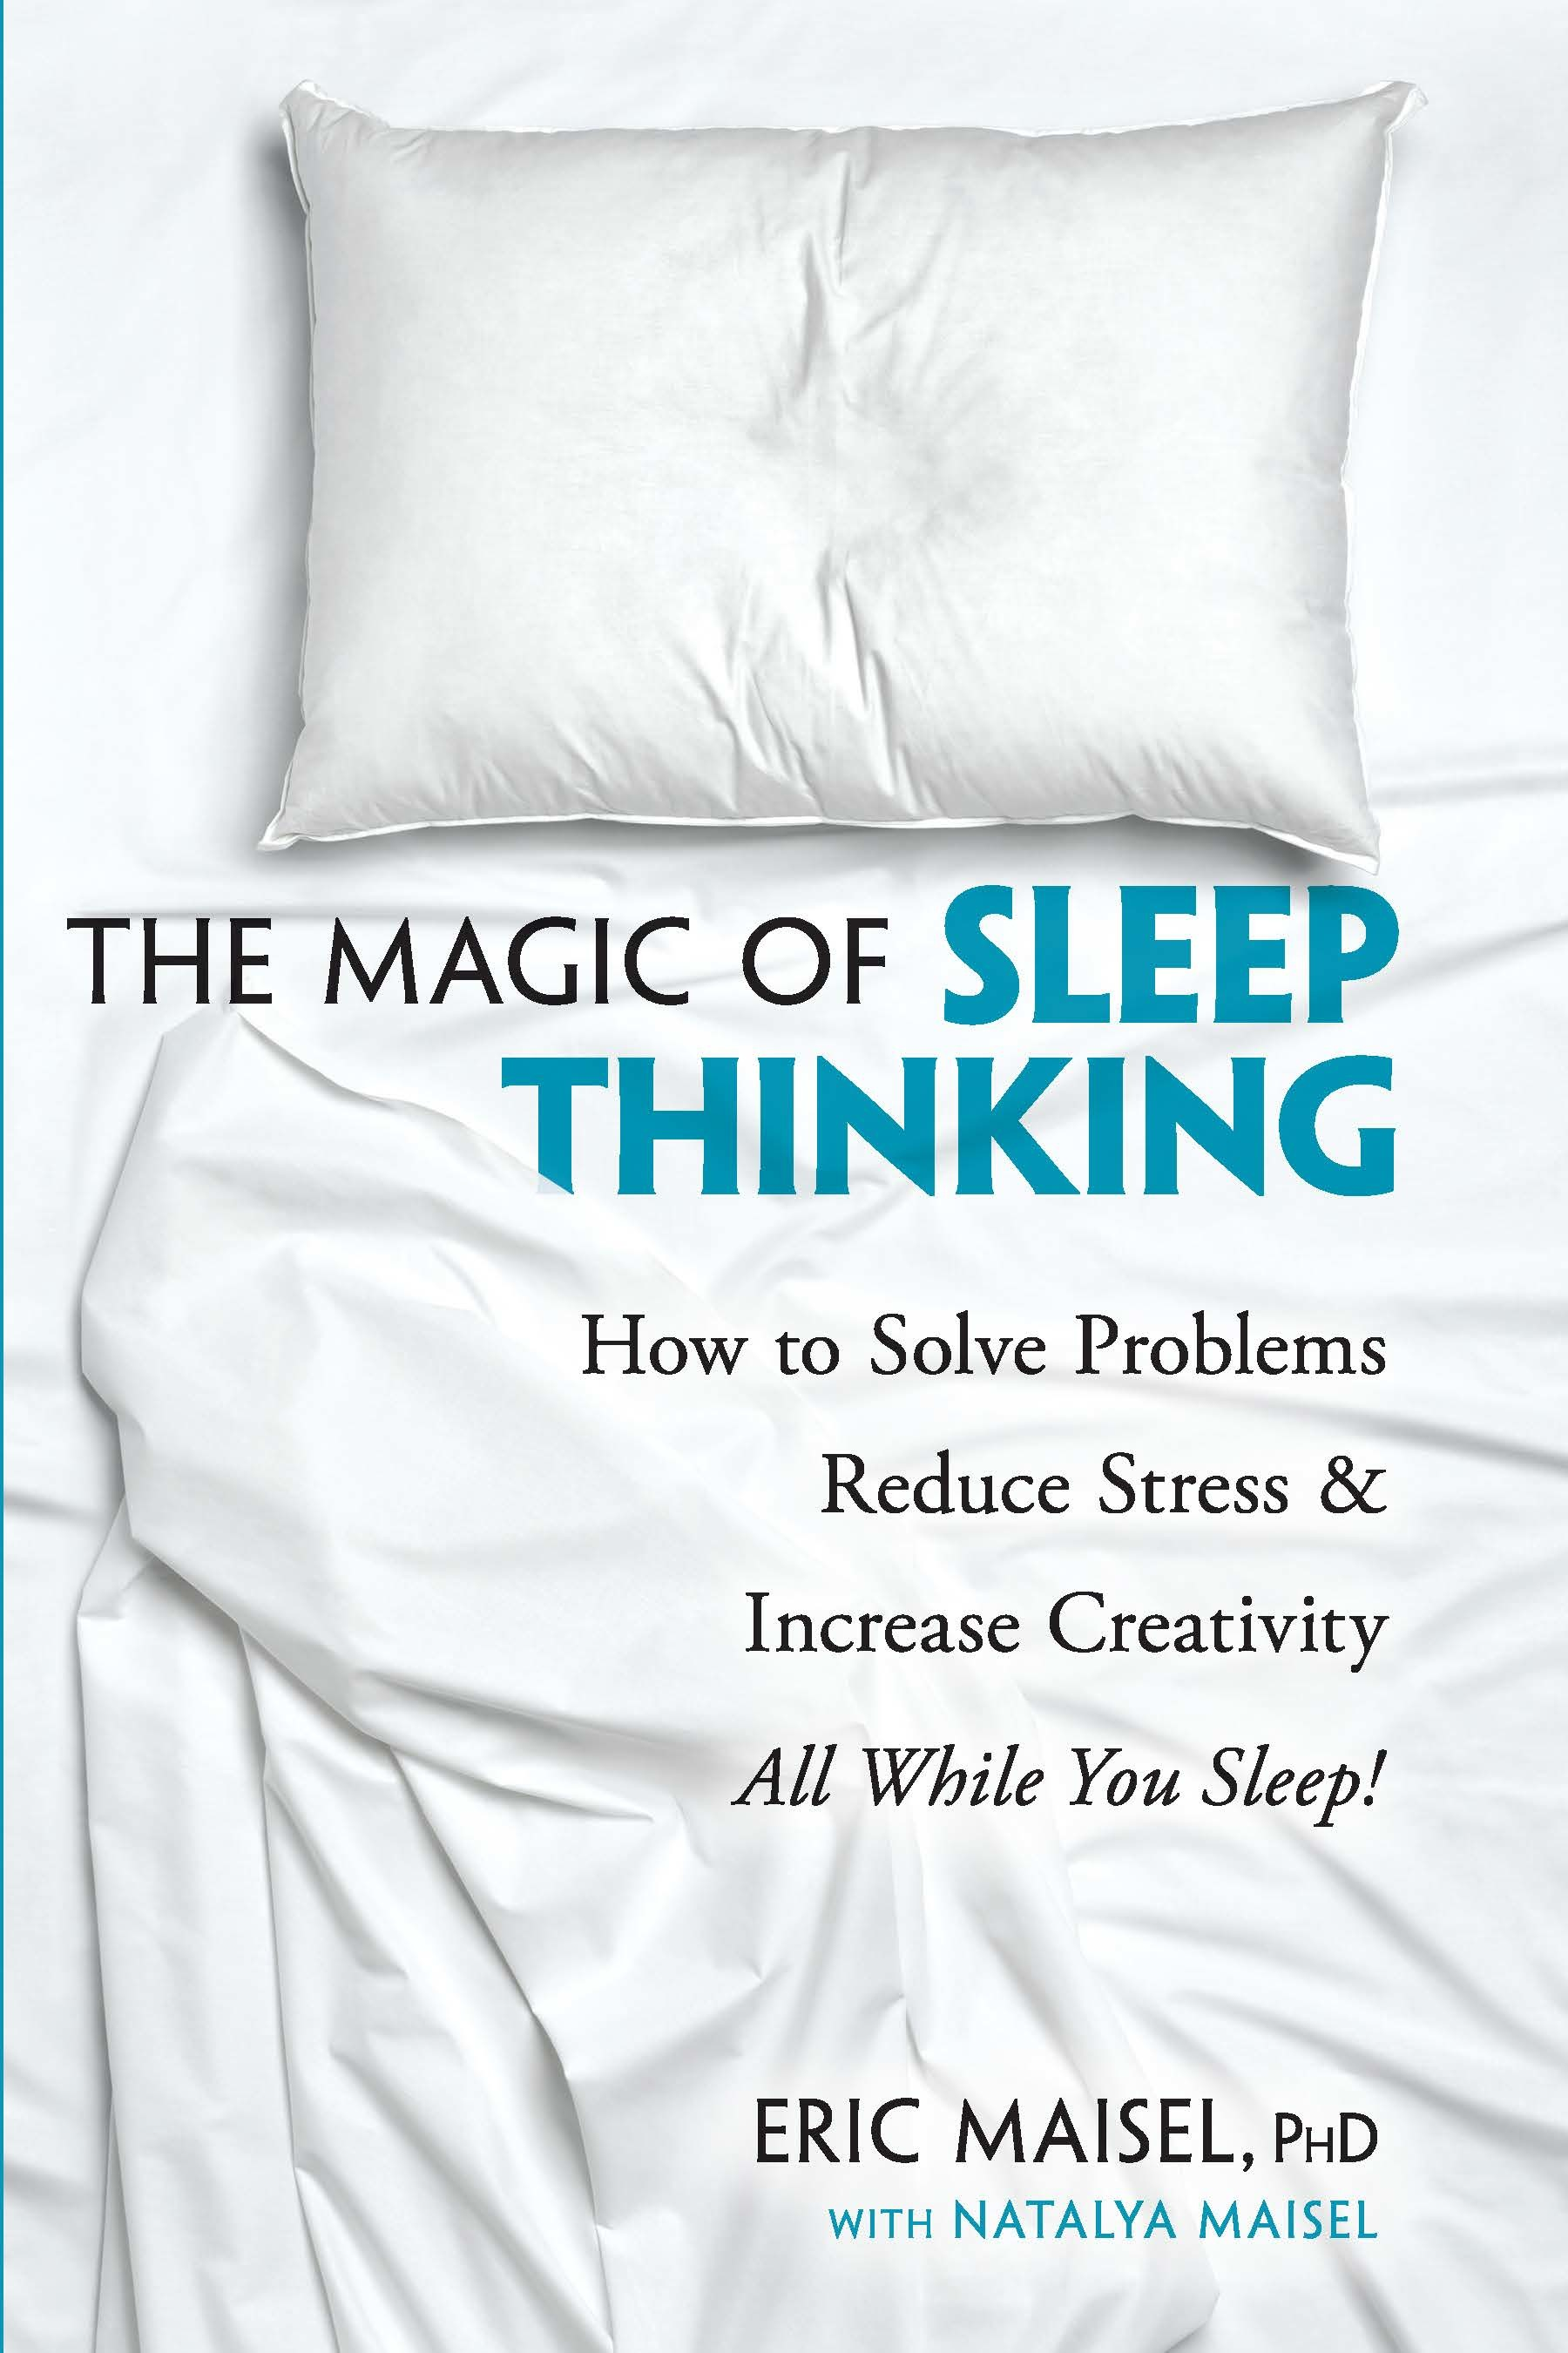 The Magic of Sleep Thinking How to Solve Problems, Reduce Stress, and Increase Creativity While You Sleep